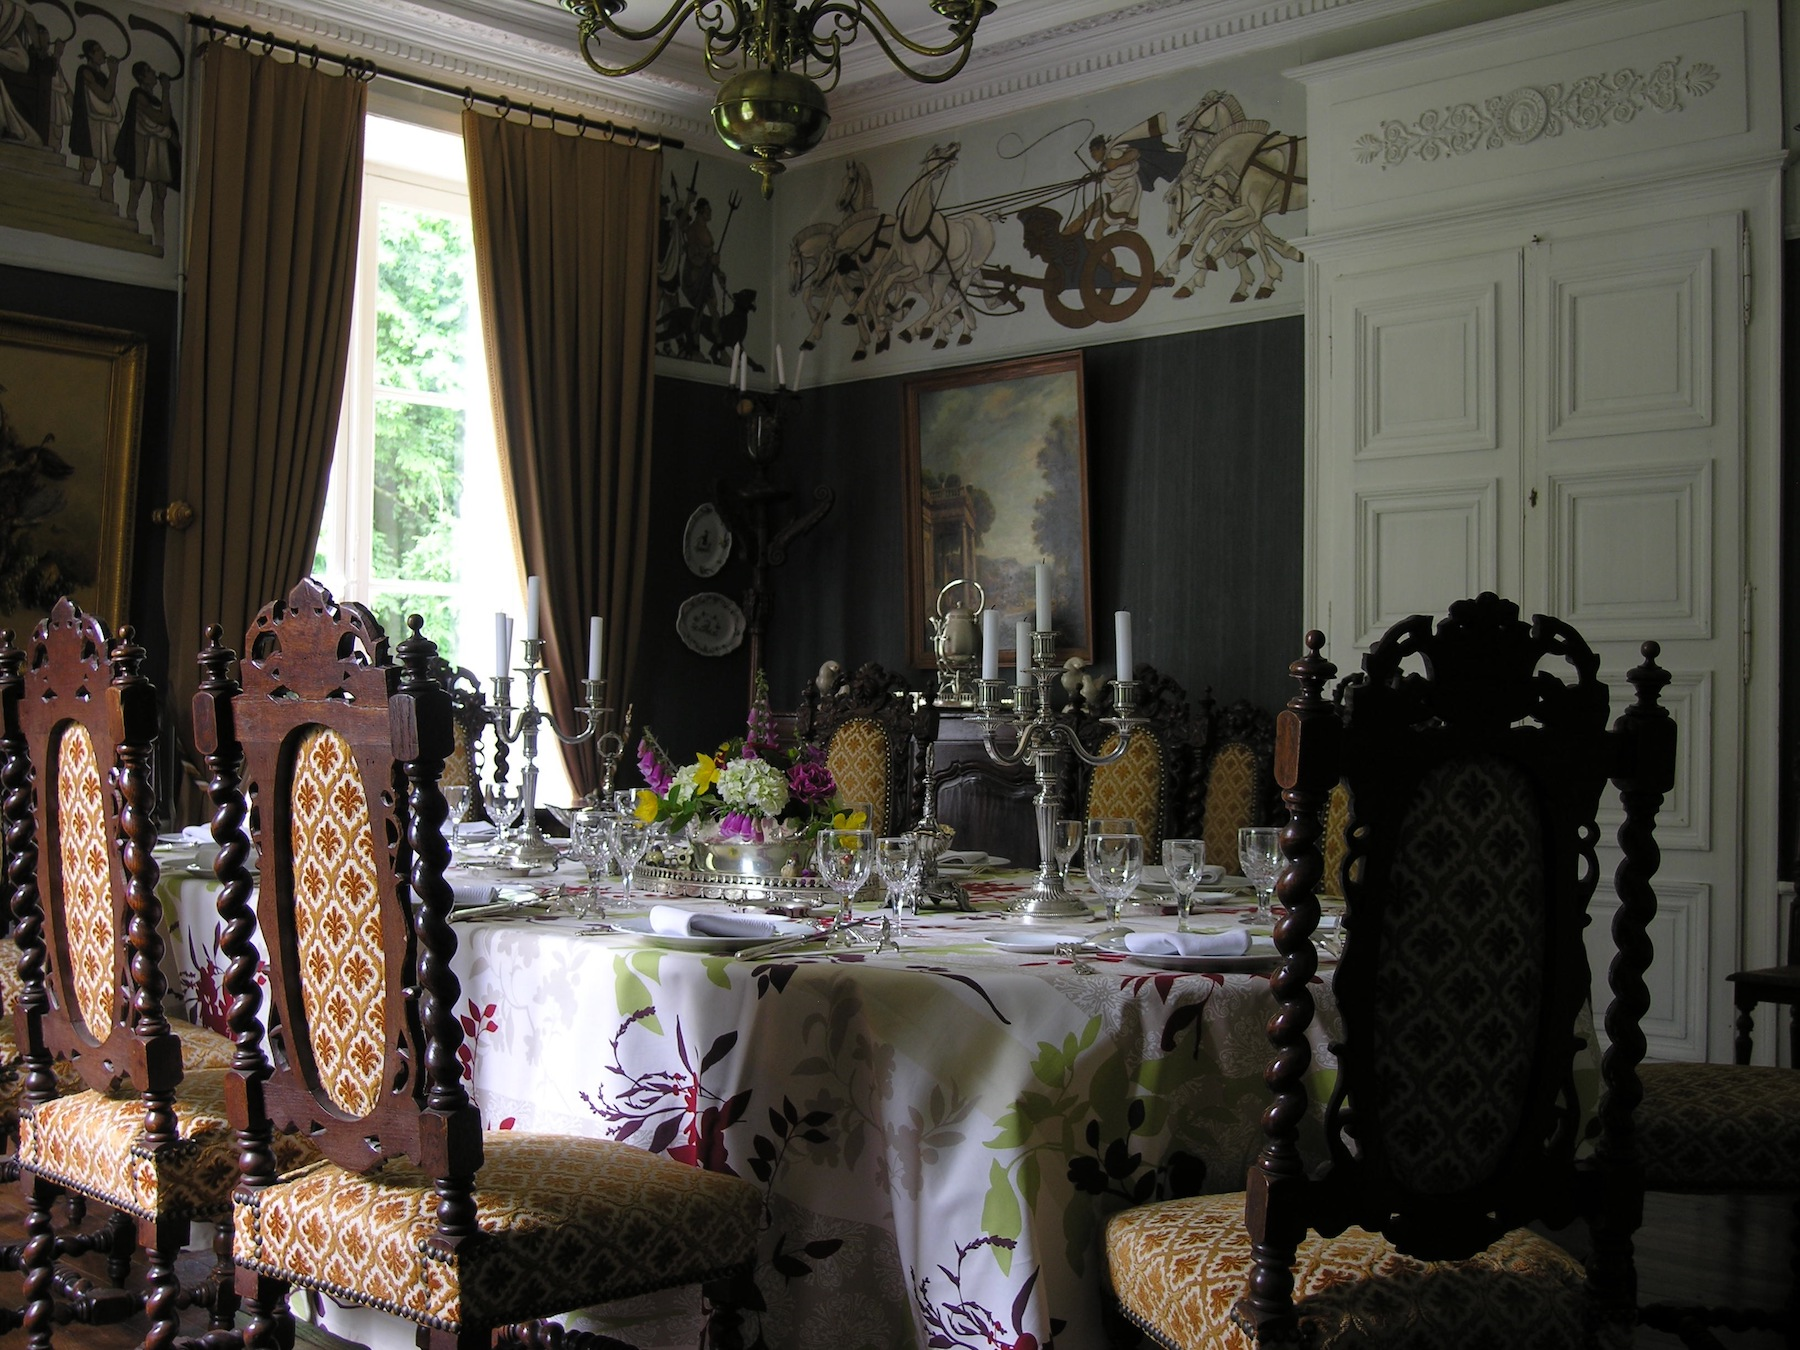 A LA CARTE... - Contact us if you would like to organise a special dinner in one of our neighbour's chateaux.